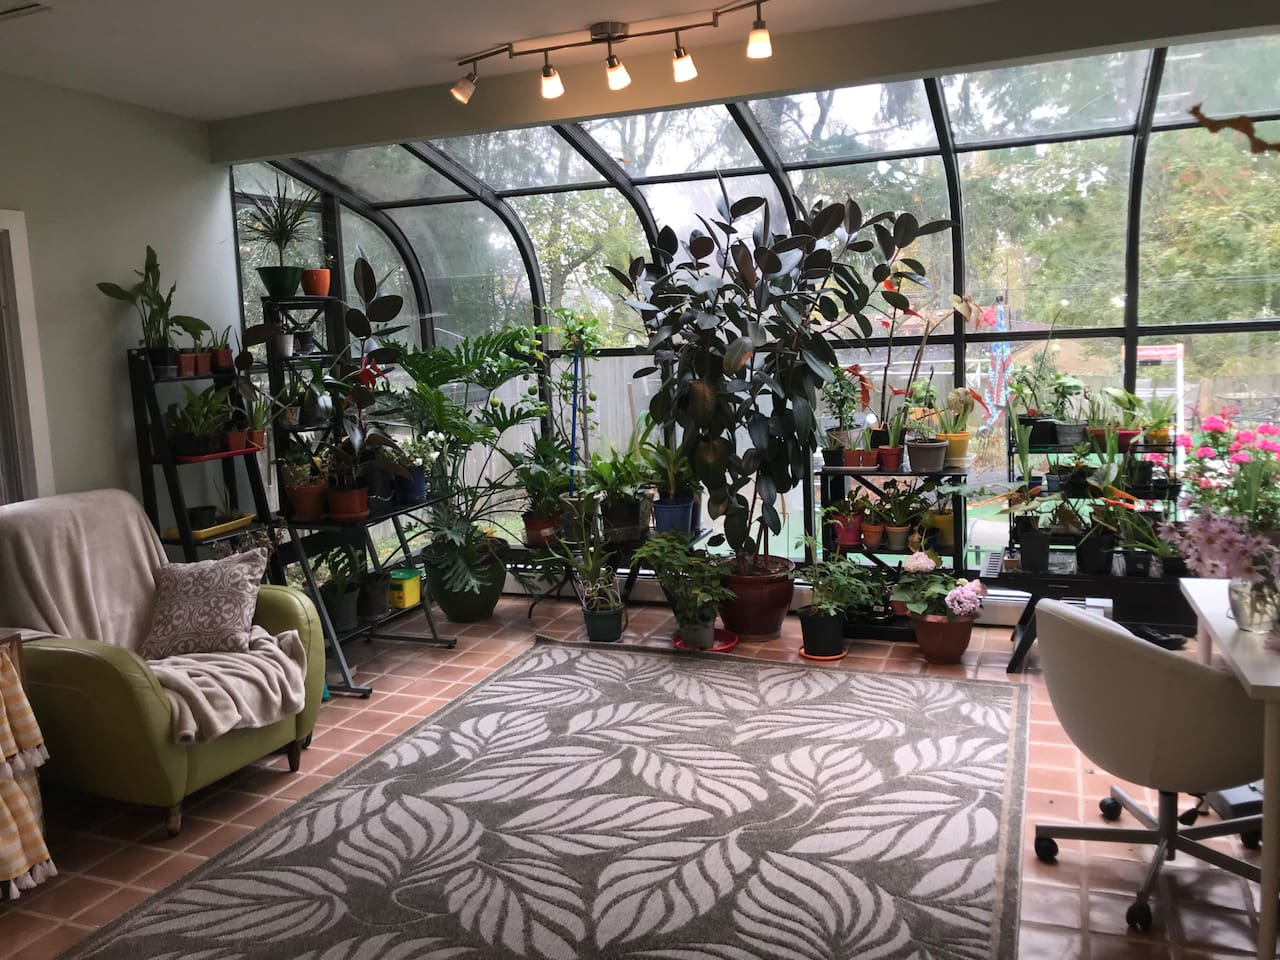 This our kitchen/sun room. We have a variety of plants growing indoor, begonias, lemon, hydrangea, orchids, and many others.